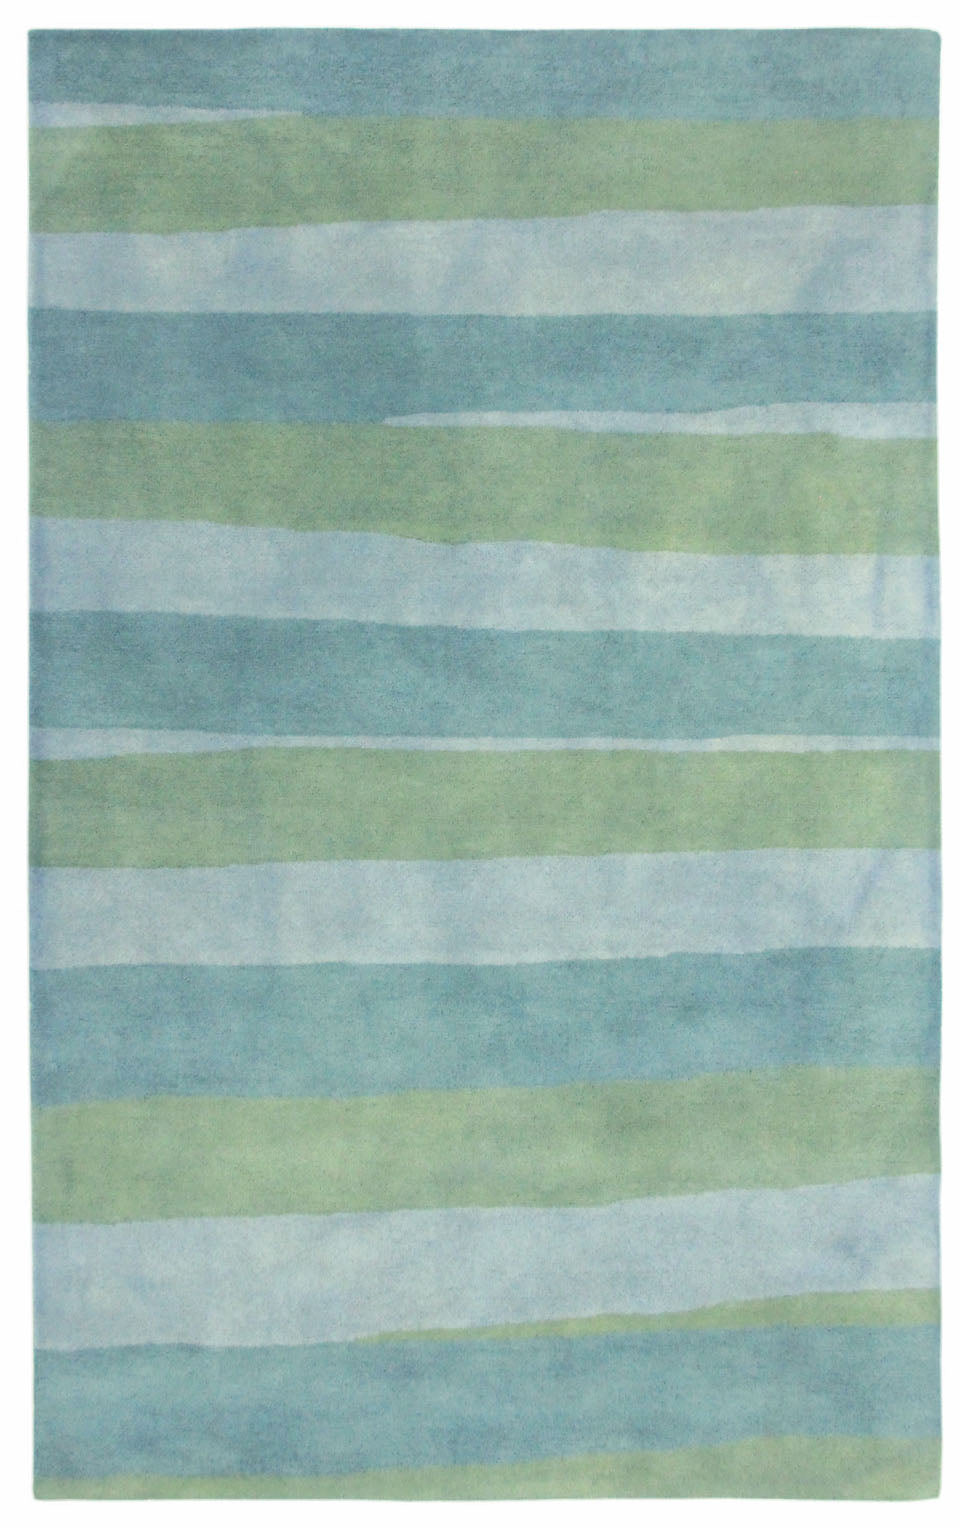 Trans Ocean Piazza Zen Green Area Rug By Liora Manne Incredible Rugs And Decor